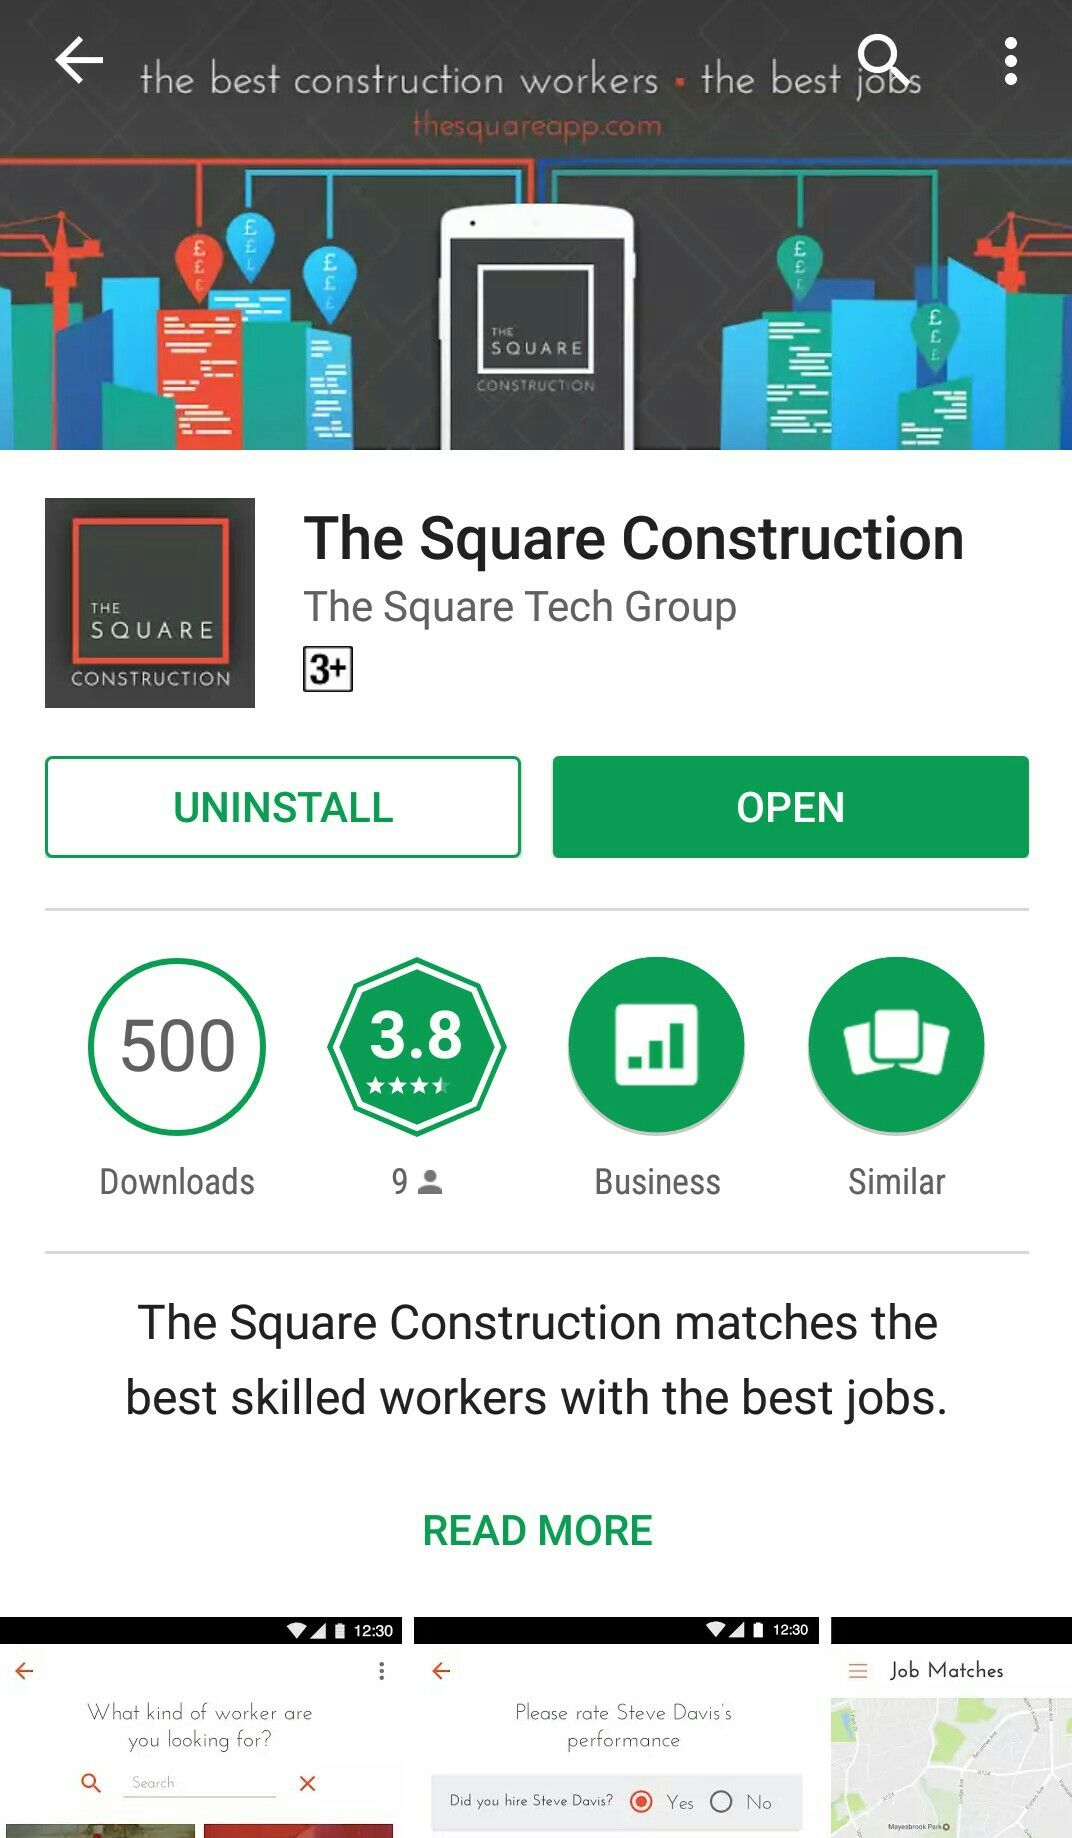 The Square Construction matches the best skilled workers